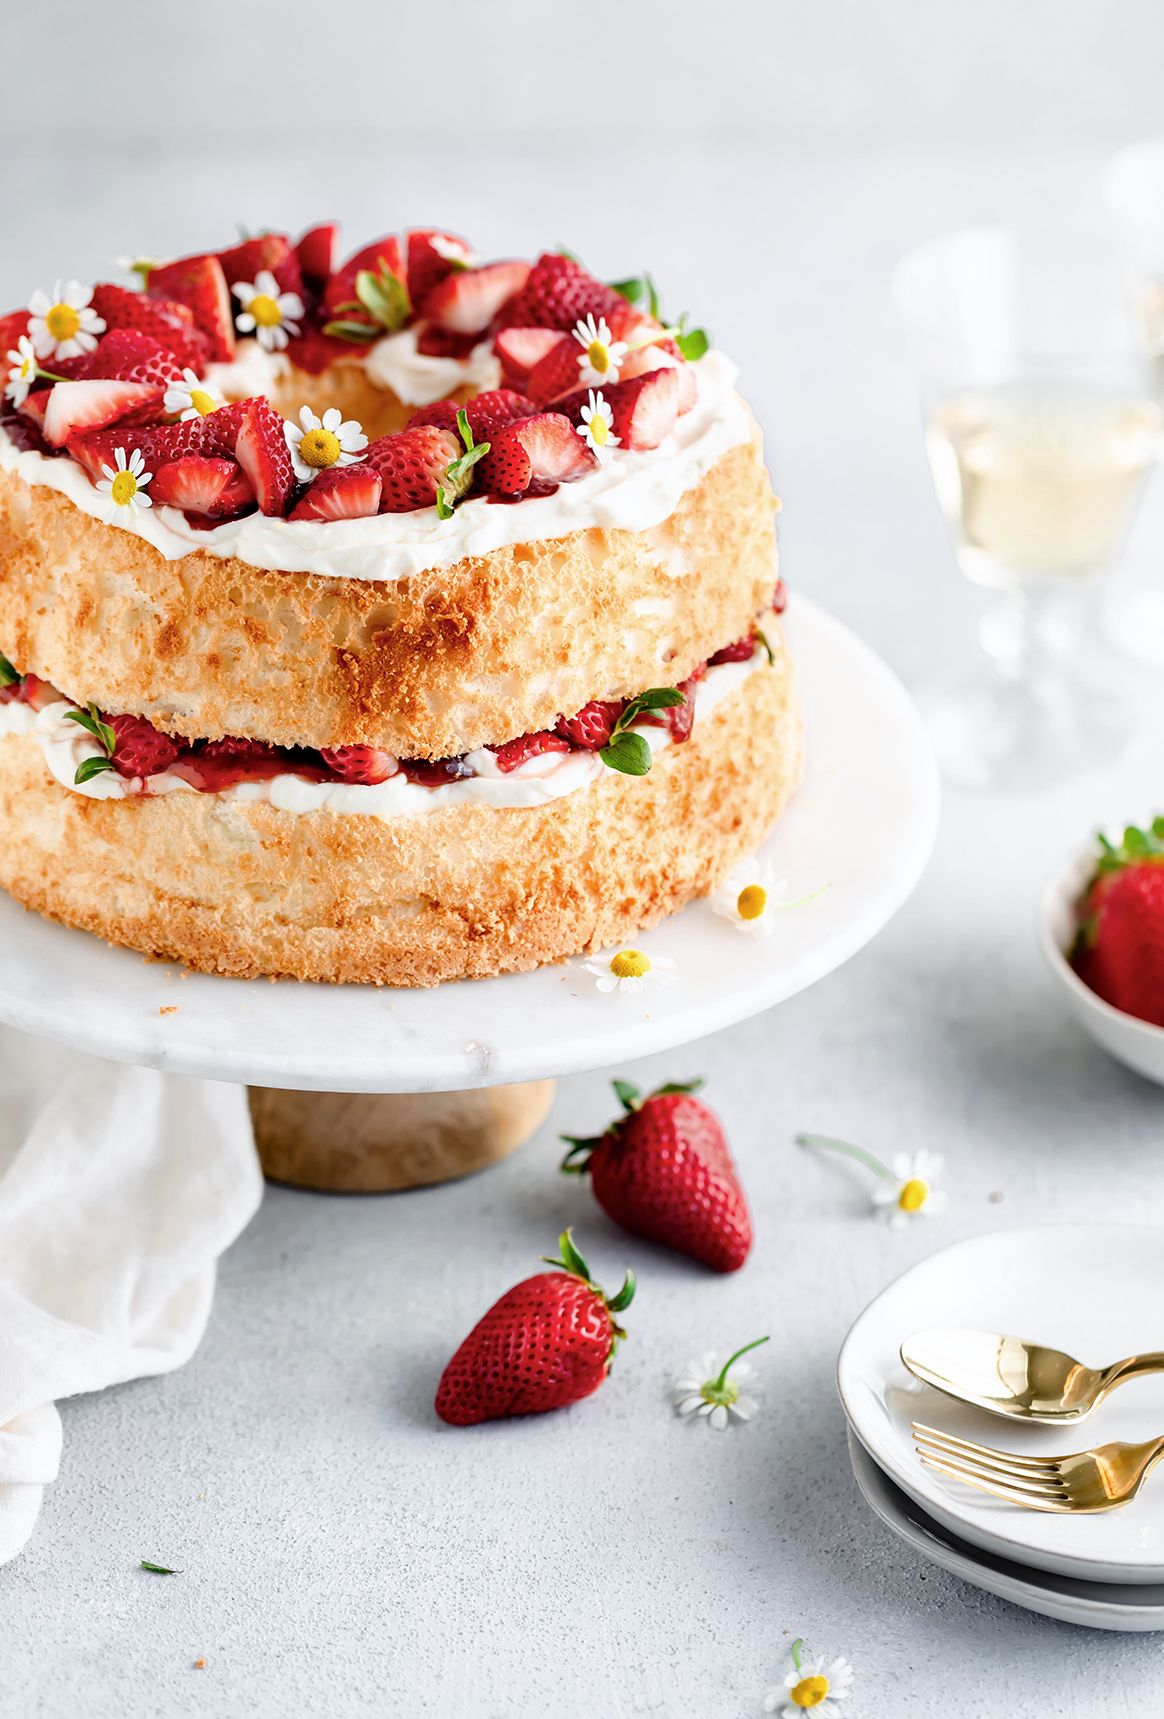 Strawberry Angel Food Cake With Honey Marcarpone Cream Strawberry Angel Food Cake Brunch Desserts Angel Food